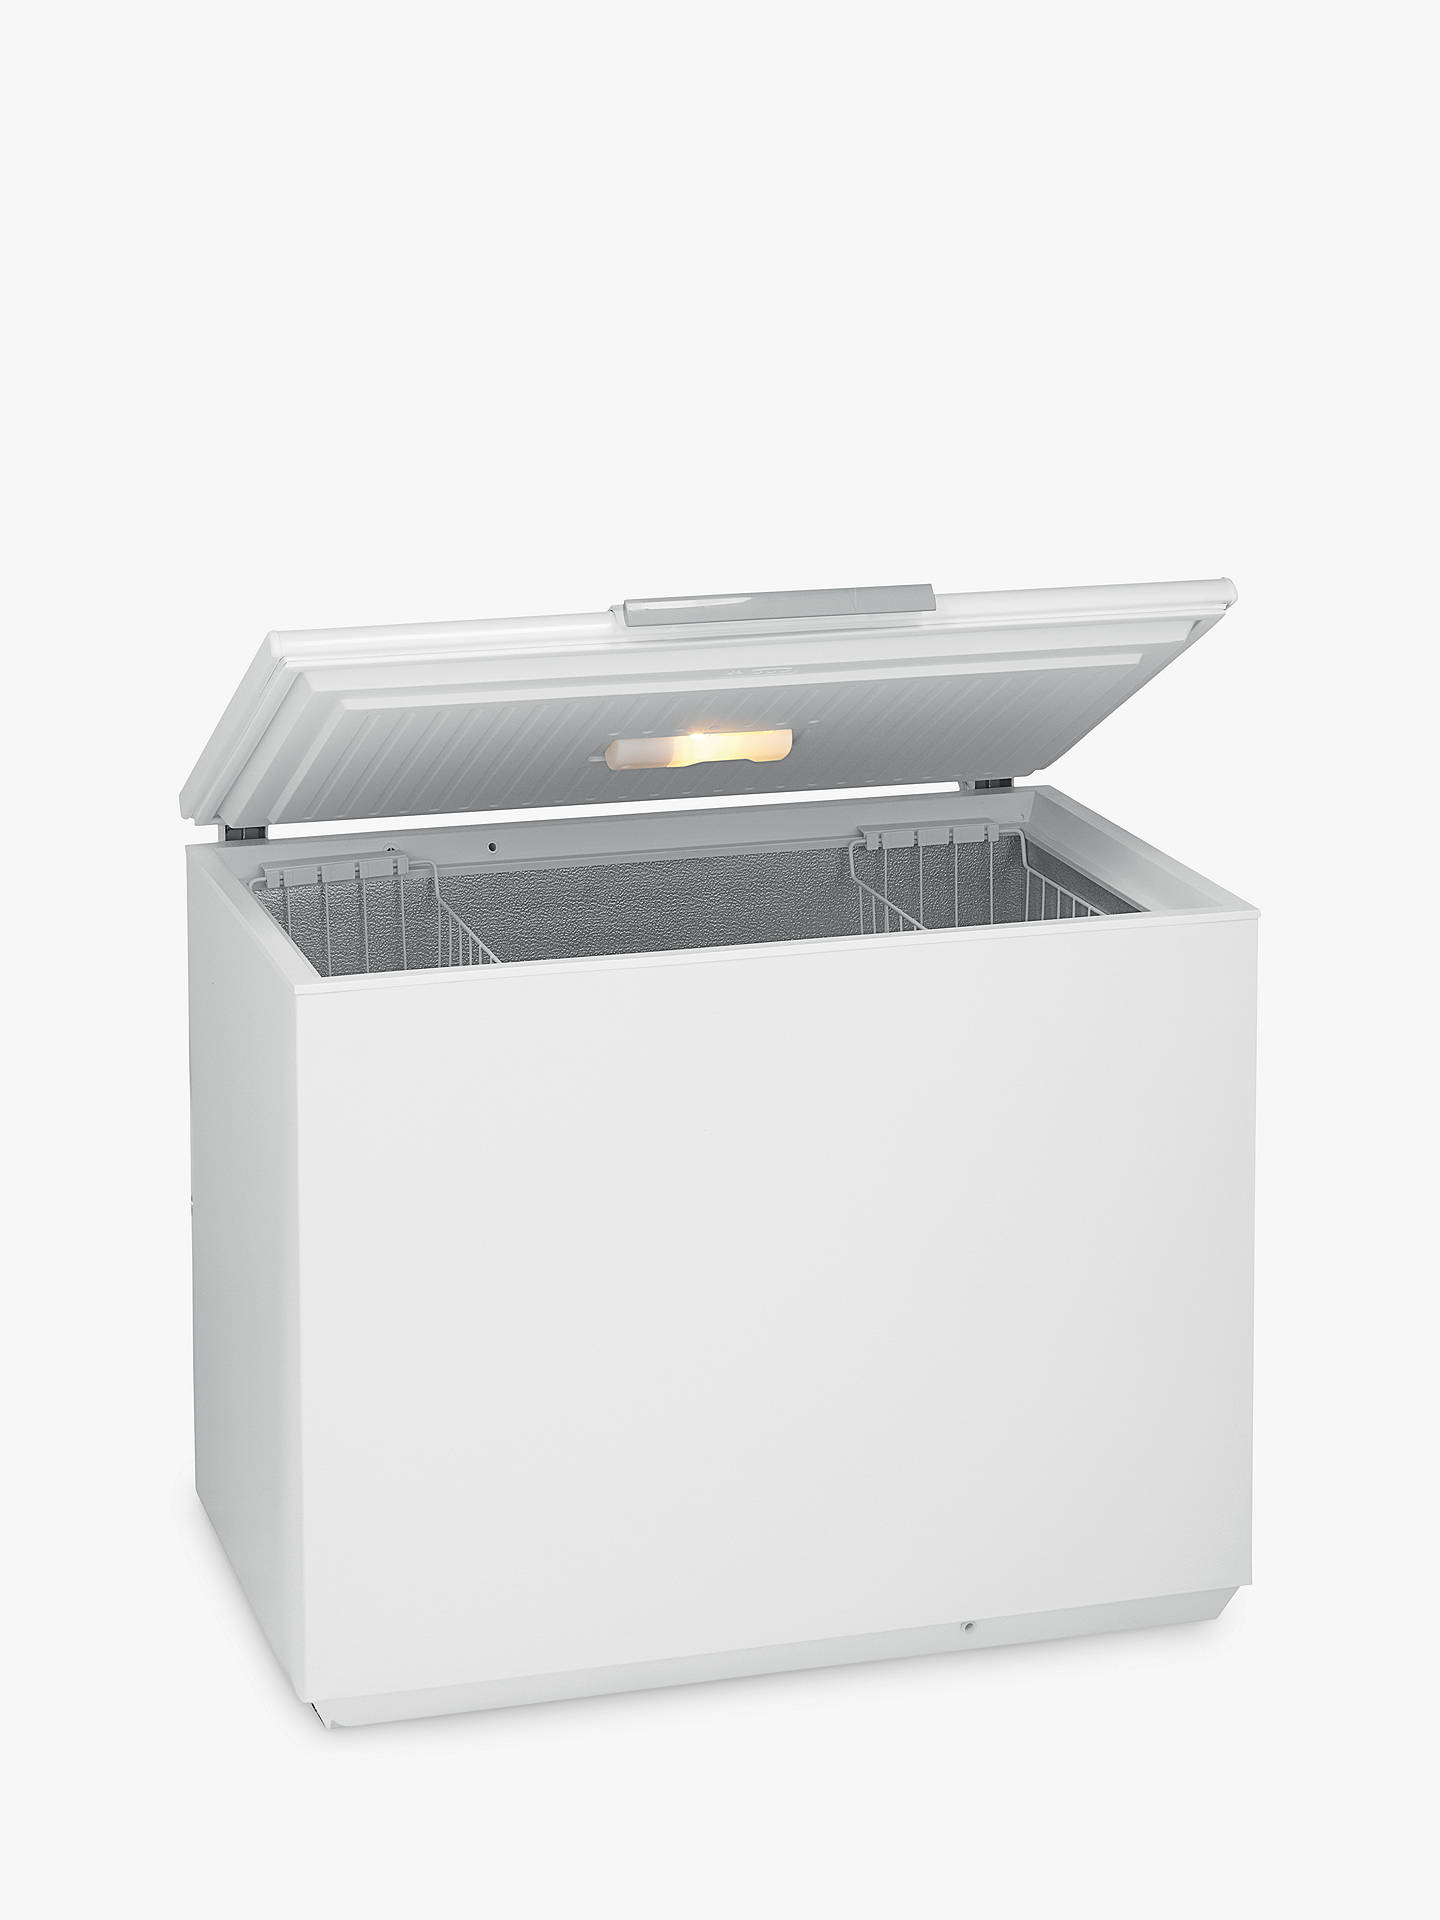 BuyJohn Lewis & Partners JLCH300 Chest Freezer, A+ Energy Rating, 106cm Wide, White Online at johnlewis.com